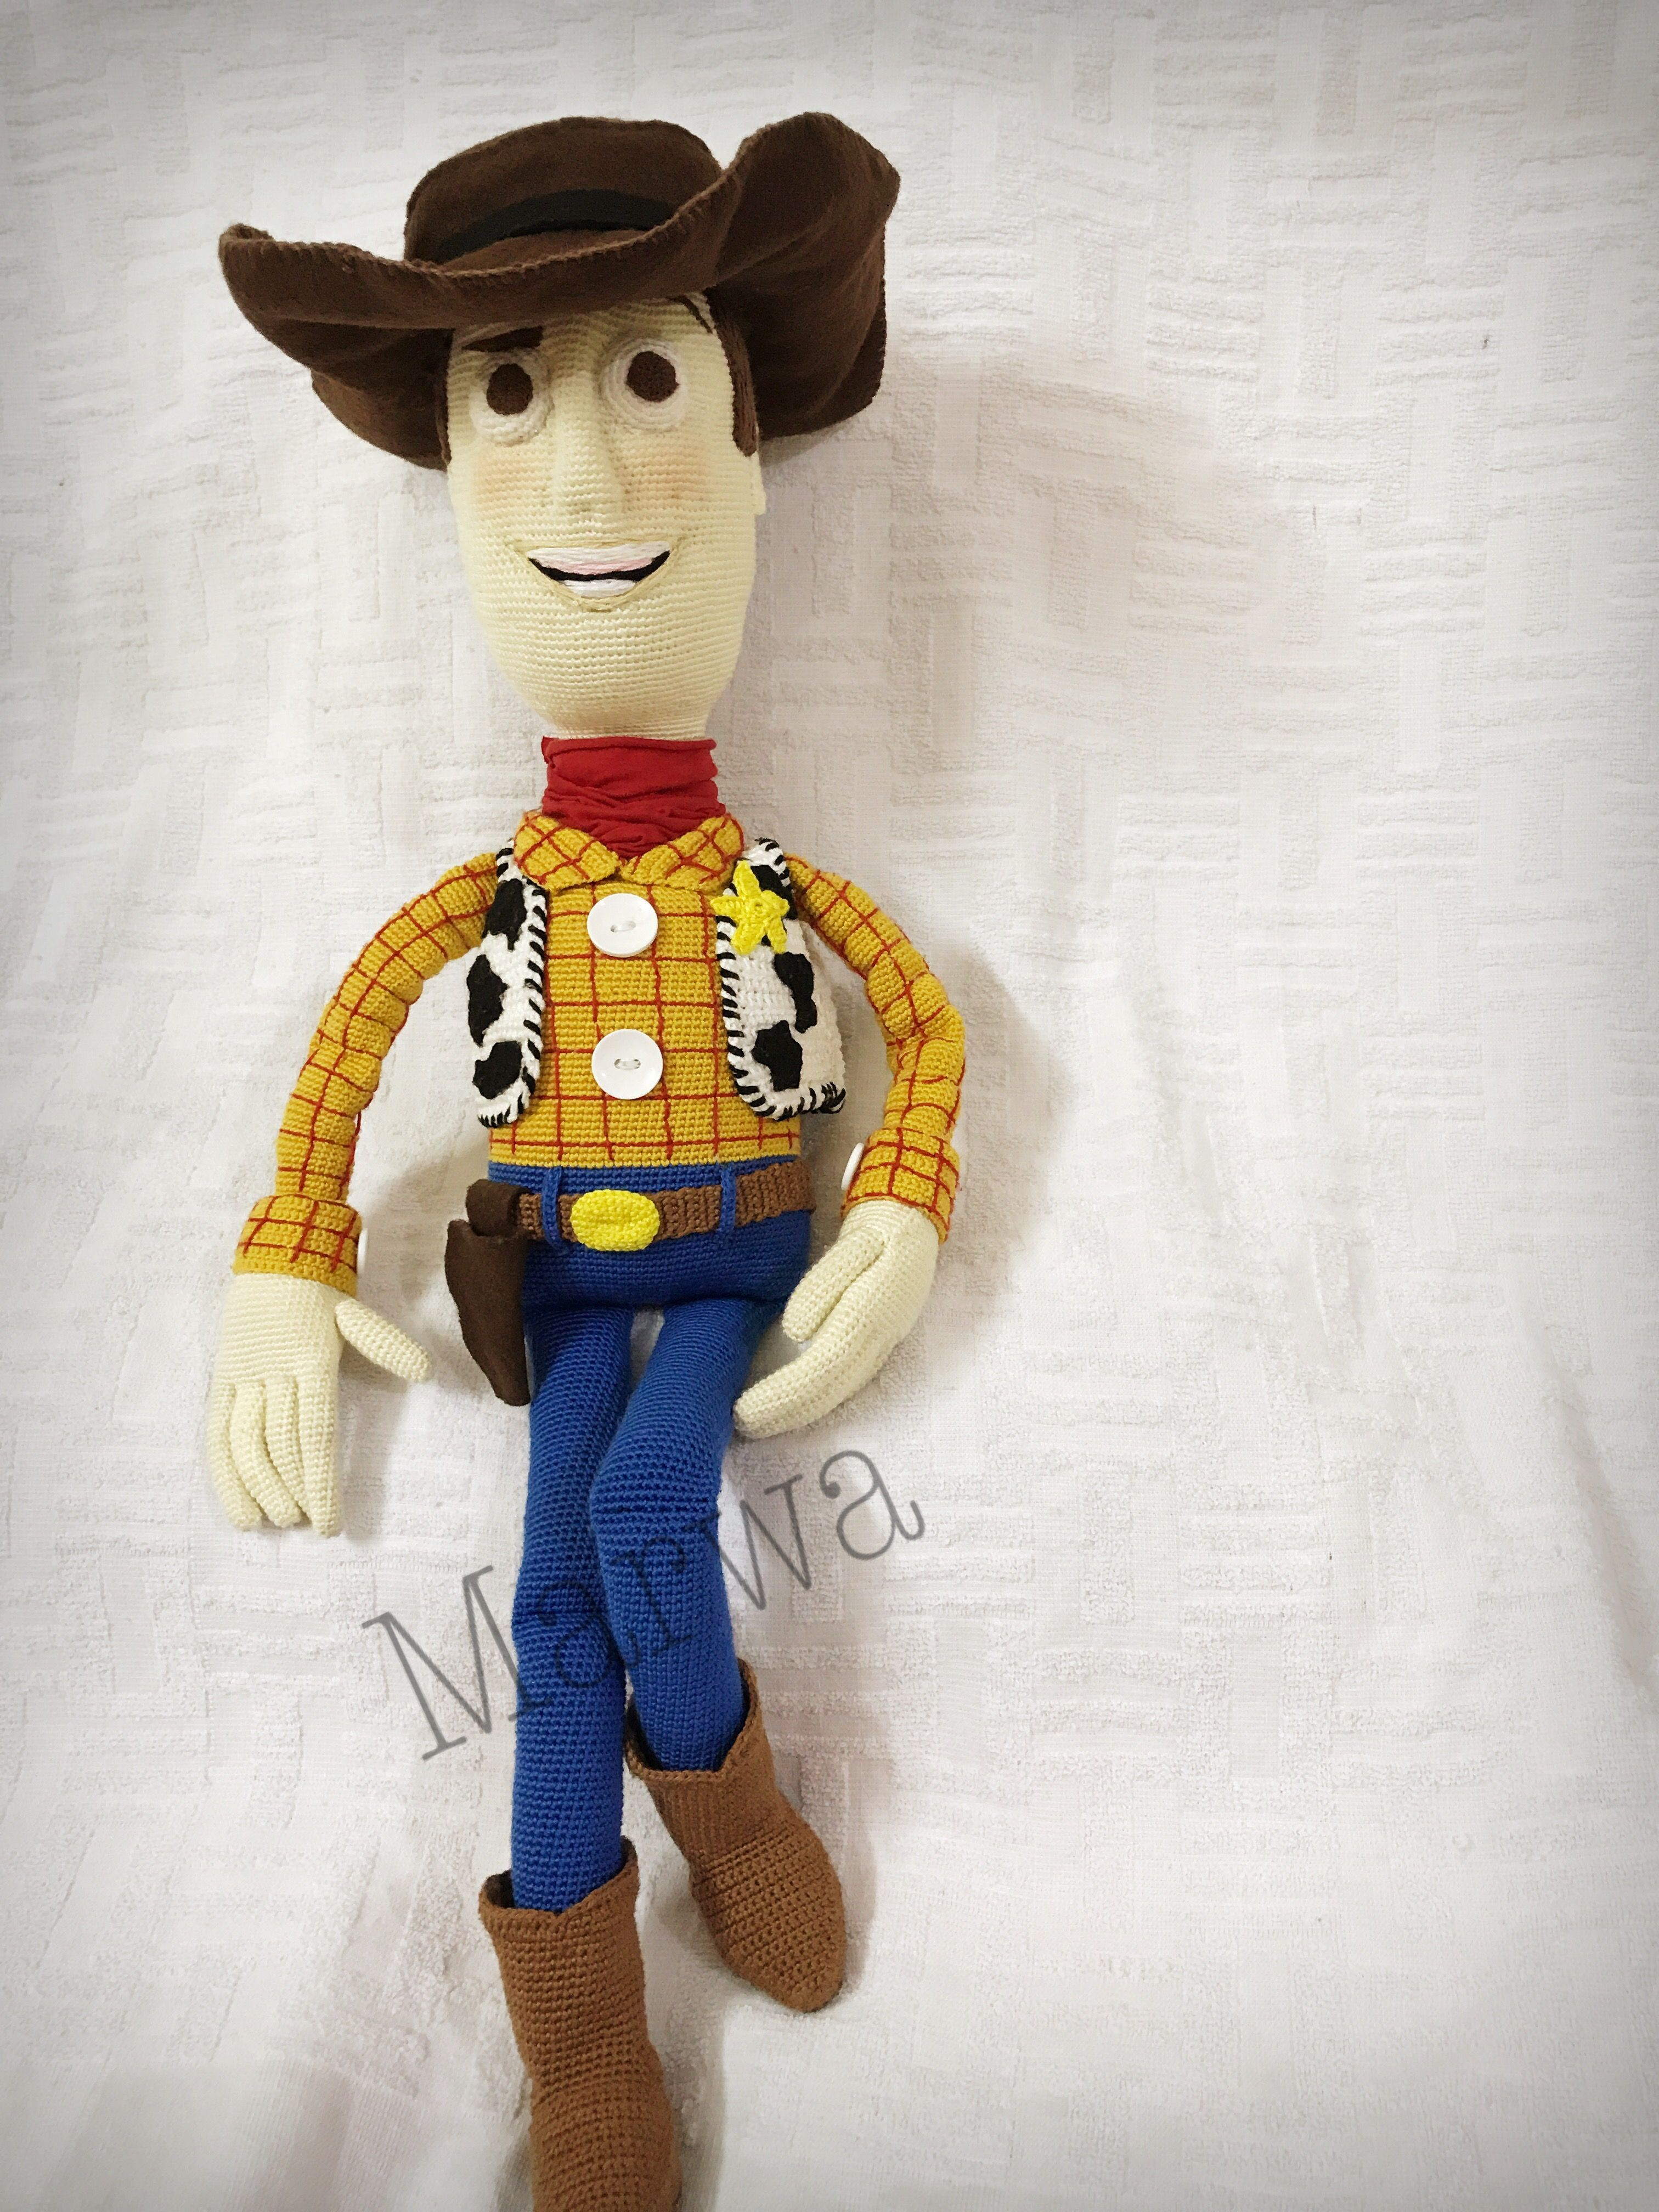 Pin by Marwa Tyseer on Woody toy story crochet   Woody toy ...